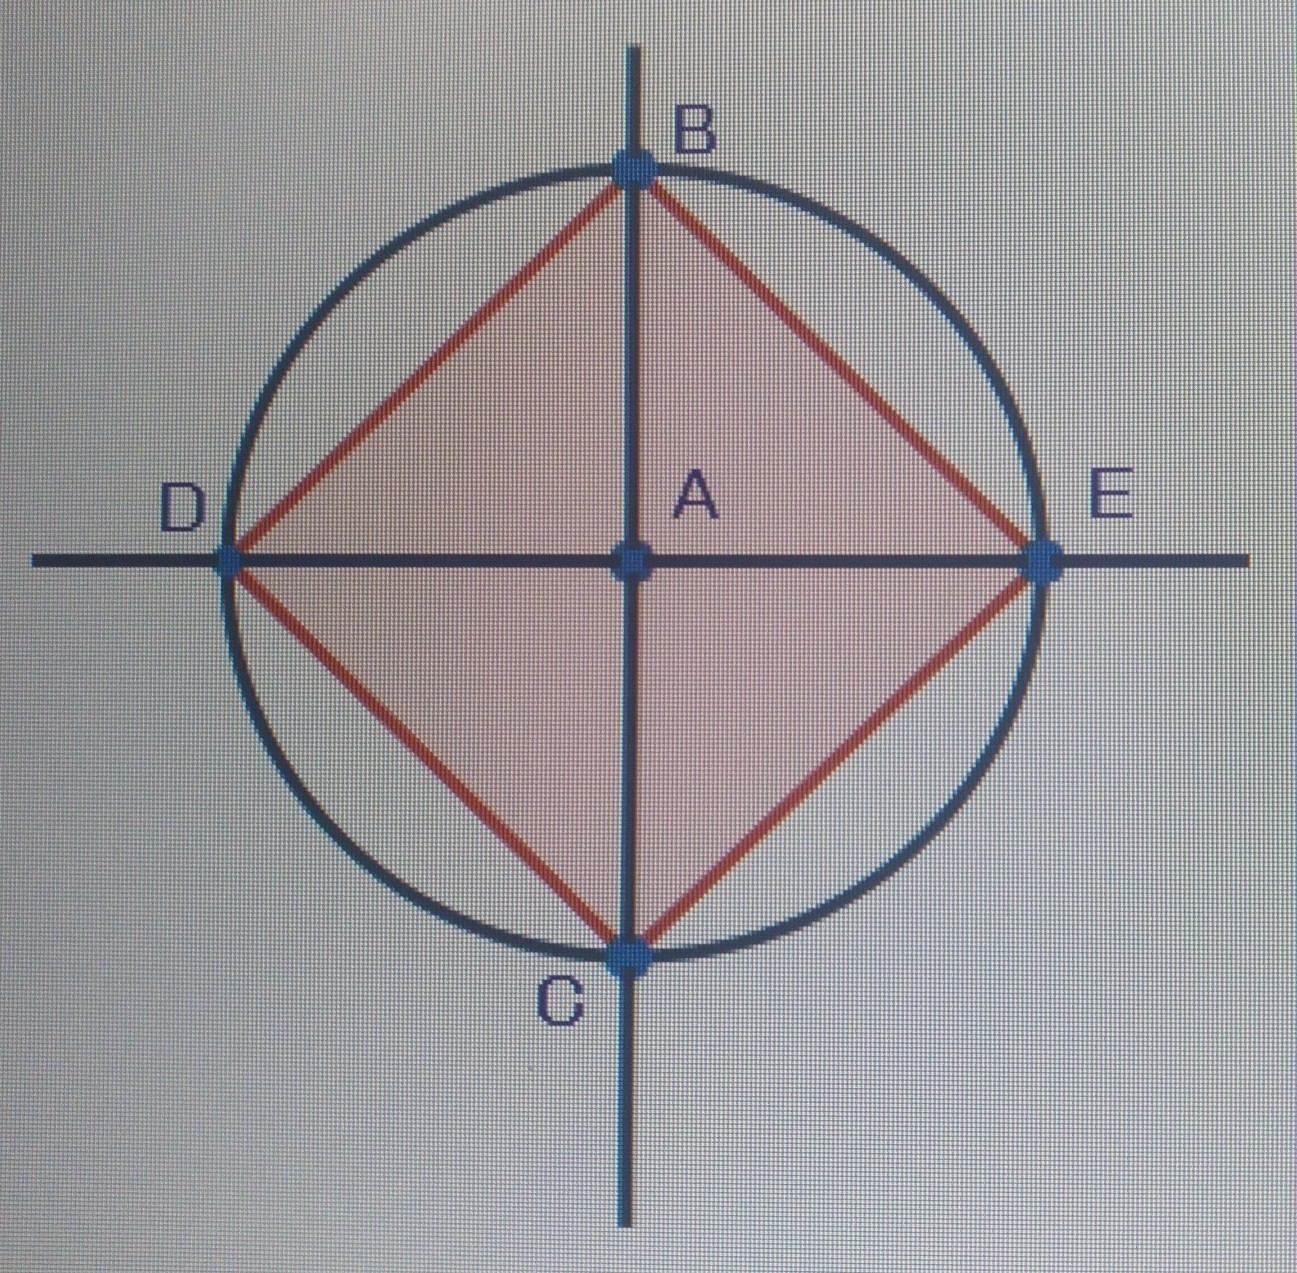 What Construction Does The Image Demonstrate A A Square